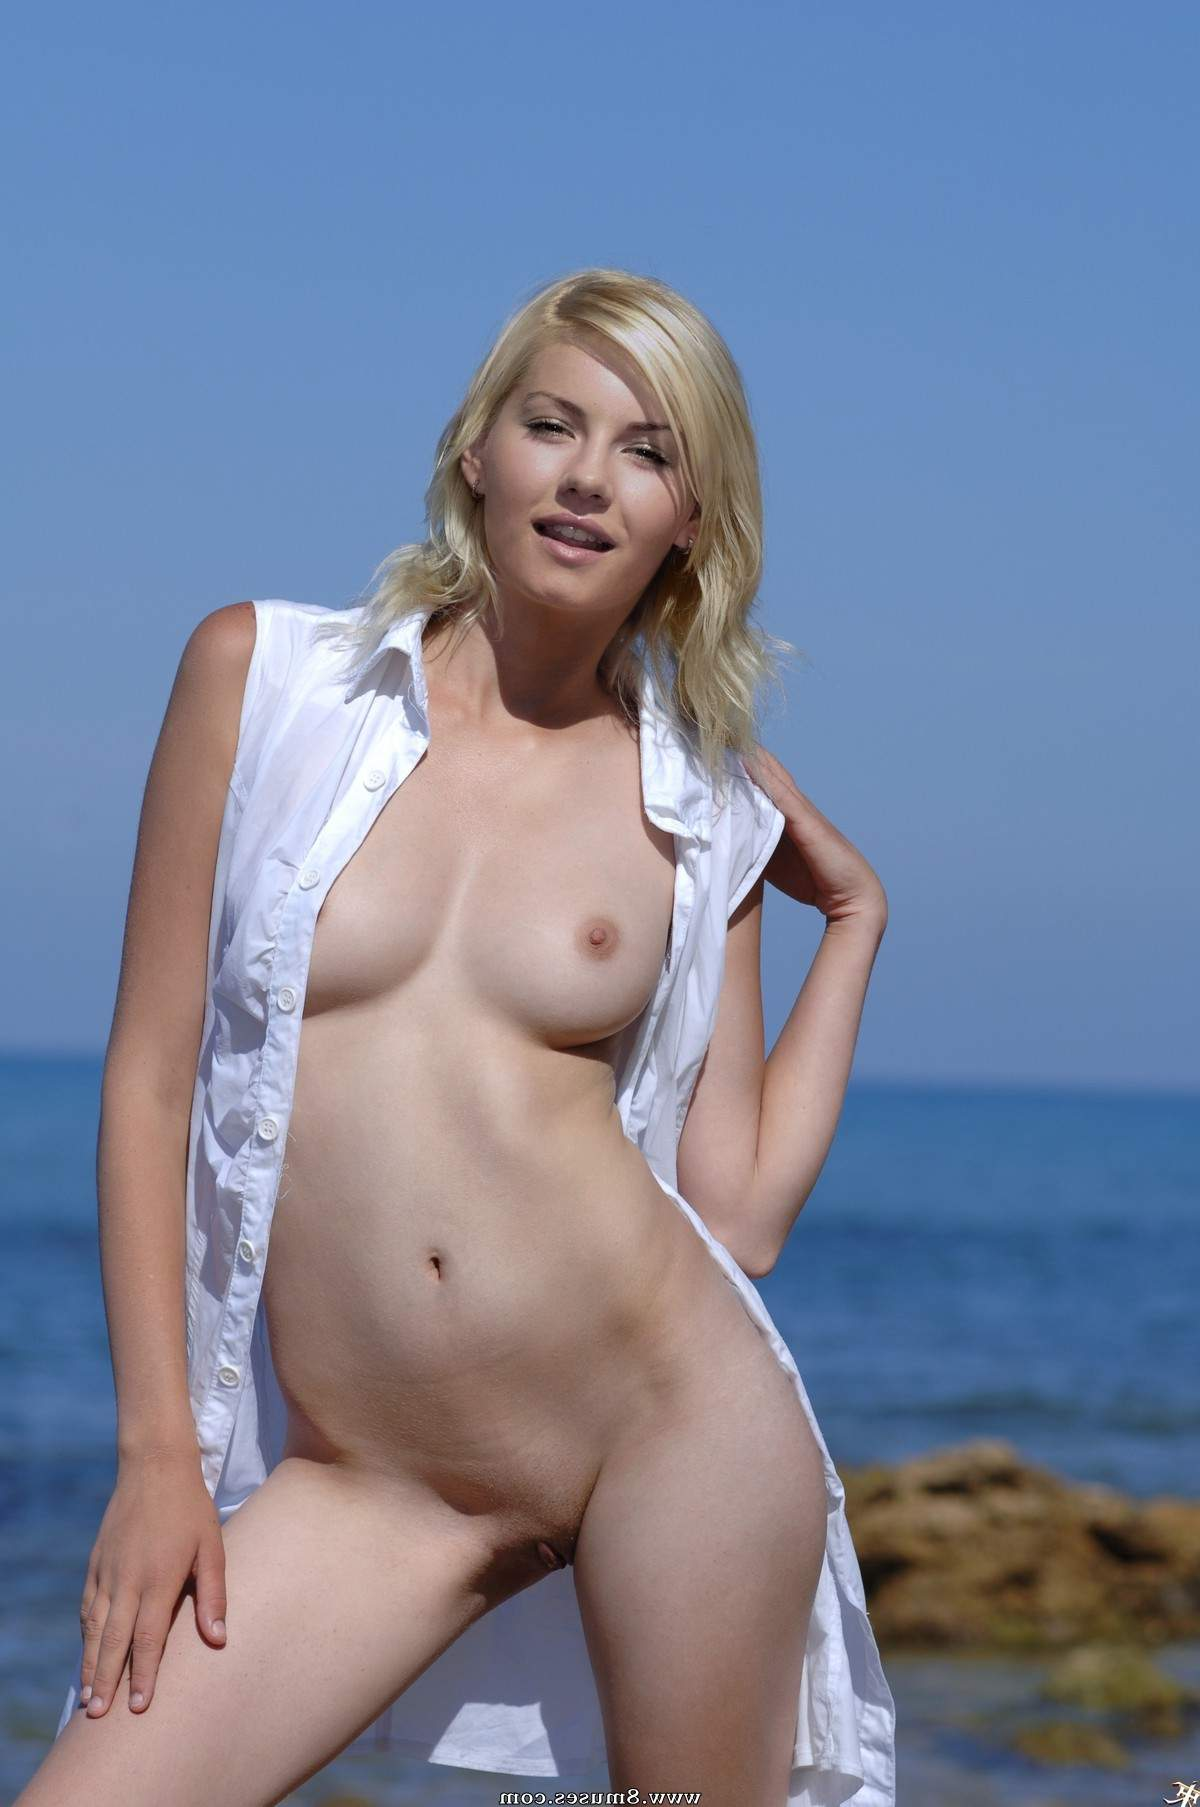 Fake-Celebrities-Sex-Pictures/Elisha-Cuthbert Elisha_Cuthbert__8muses_-_Sex_and_Porn_Comics_271.jpg